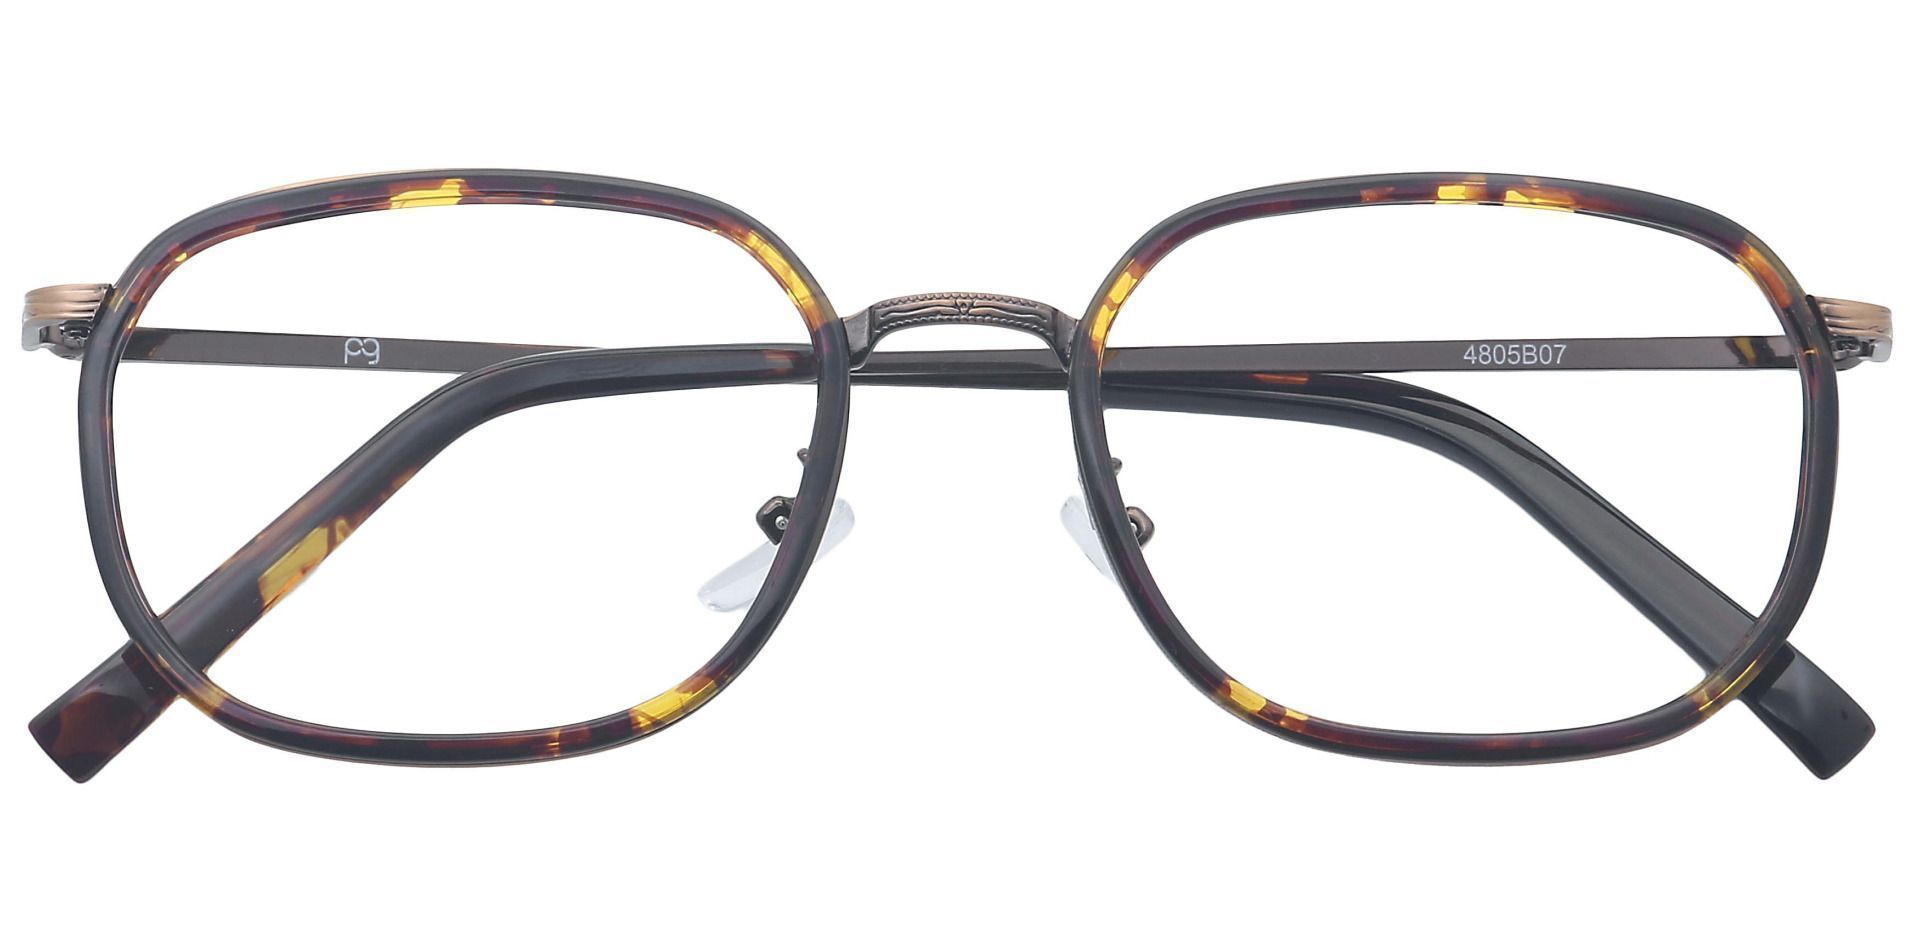 Harlem Oval Non-Rx Glasses - Brown